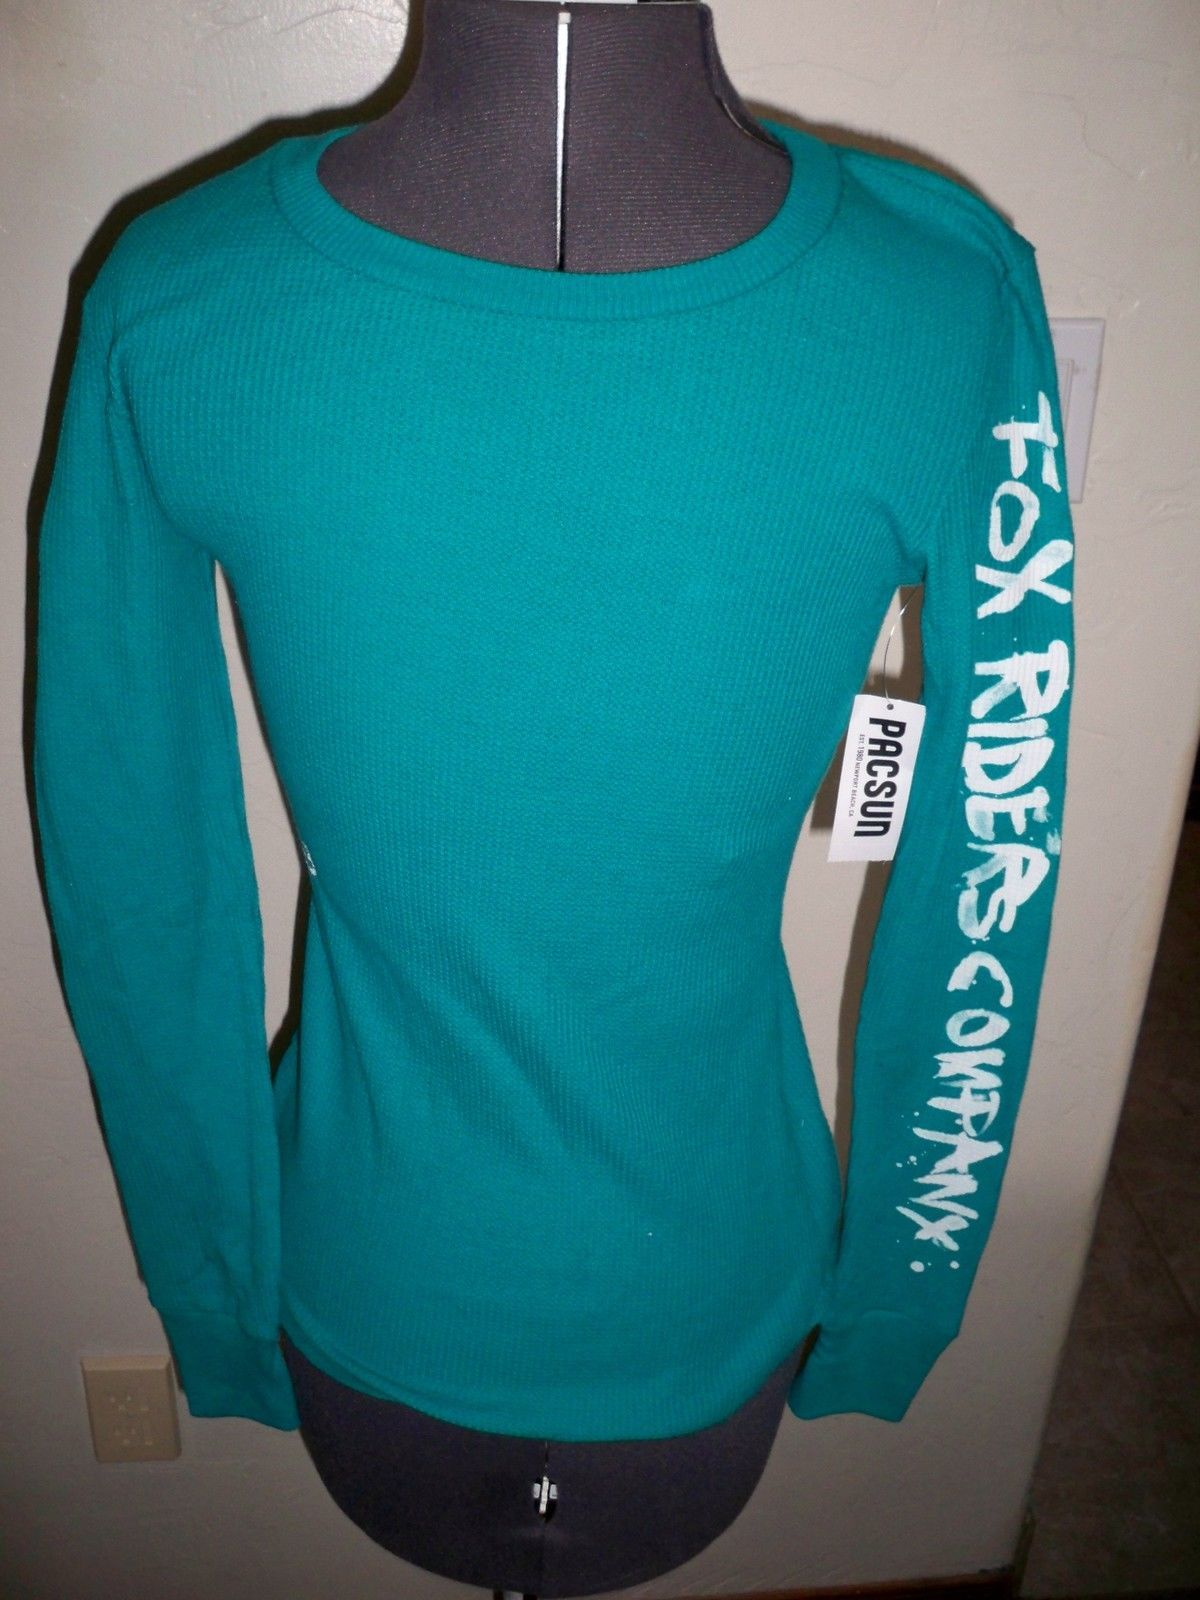 9202078e4 Women fox racing long sleeve thermal tee shirt teal fox logo new JPG  1200x1600 Teal fox